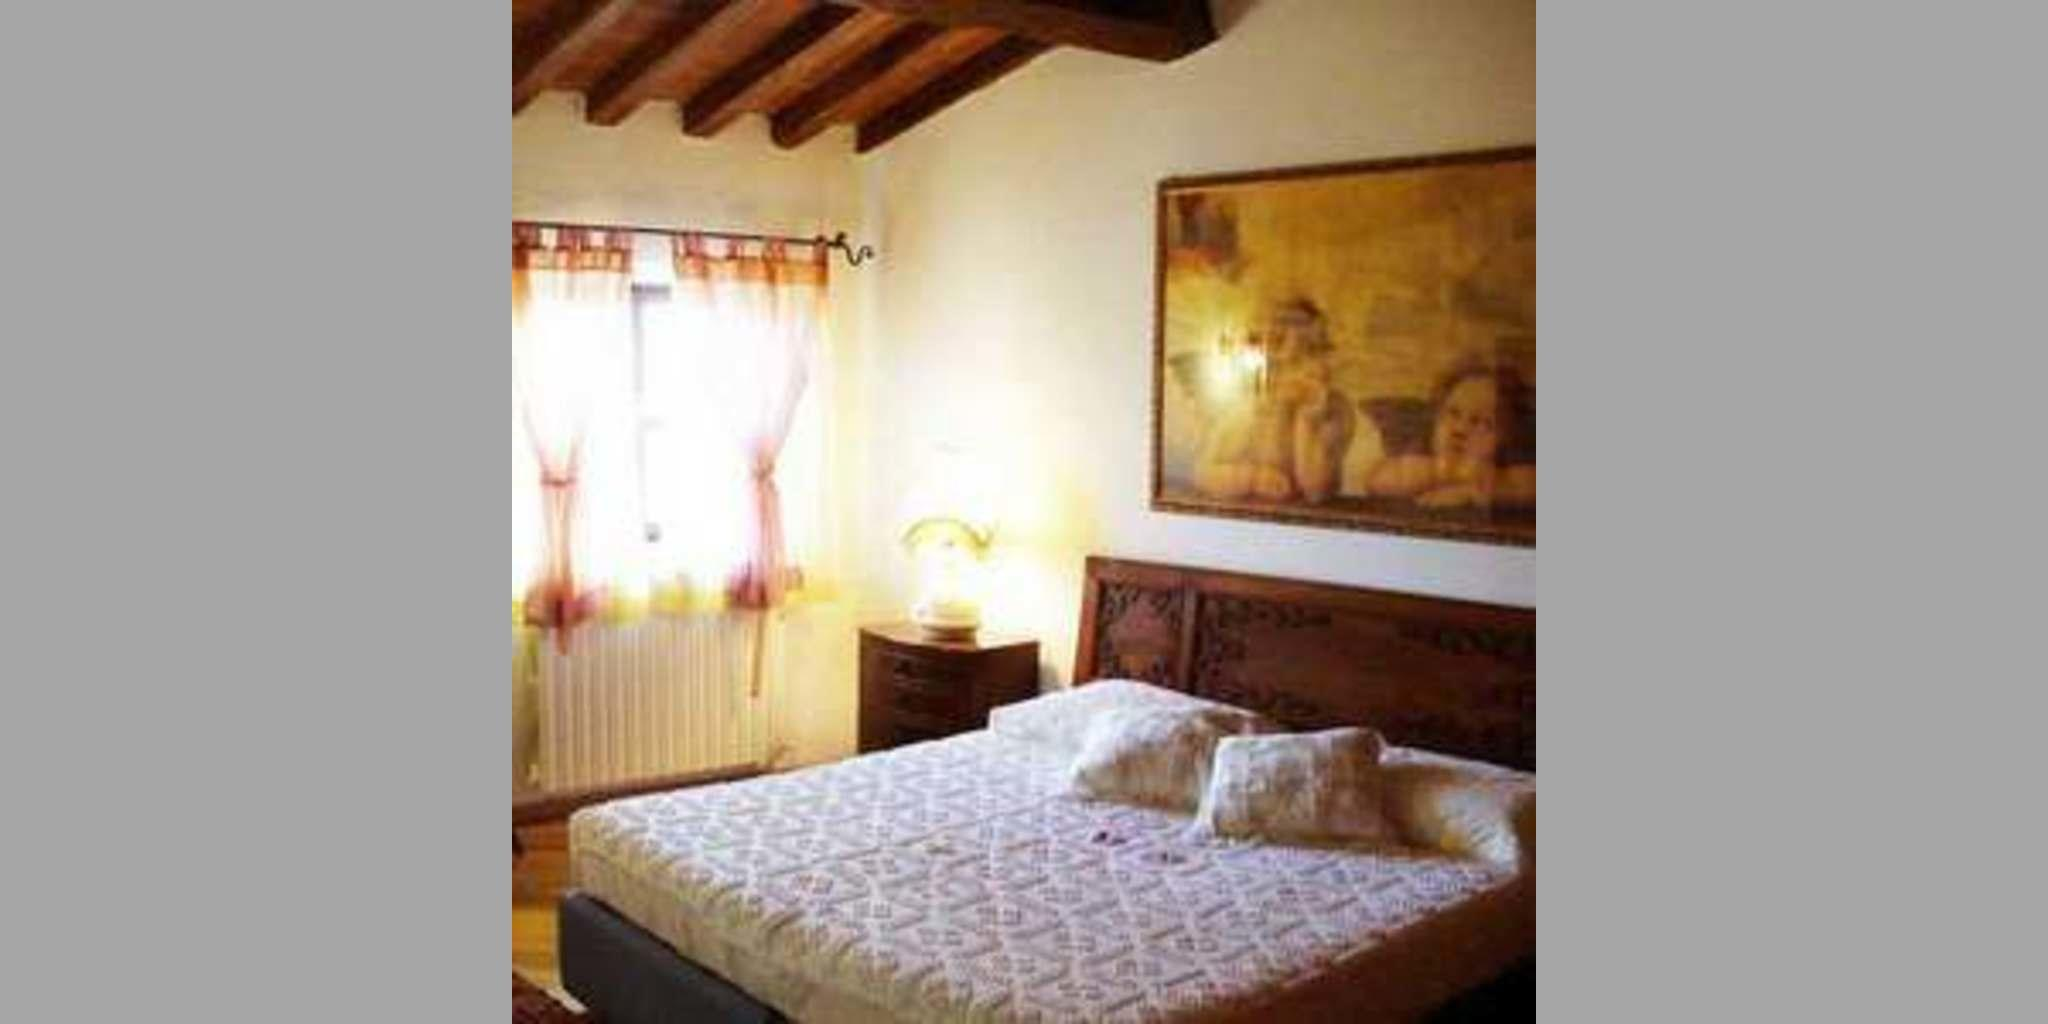 Bed & Breakfast Bibbiena - Farneta_Bibbiena